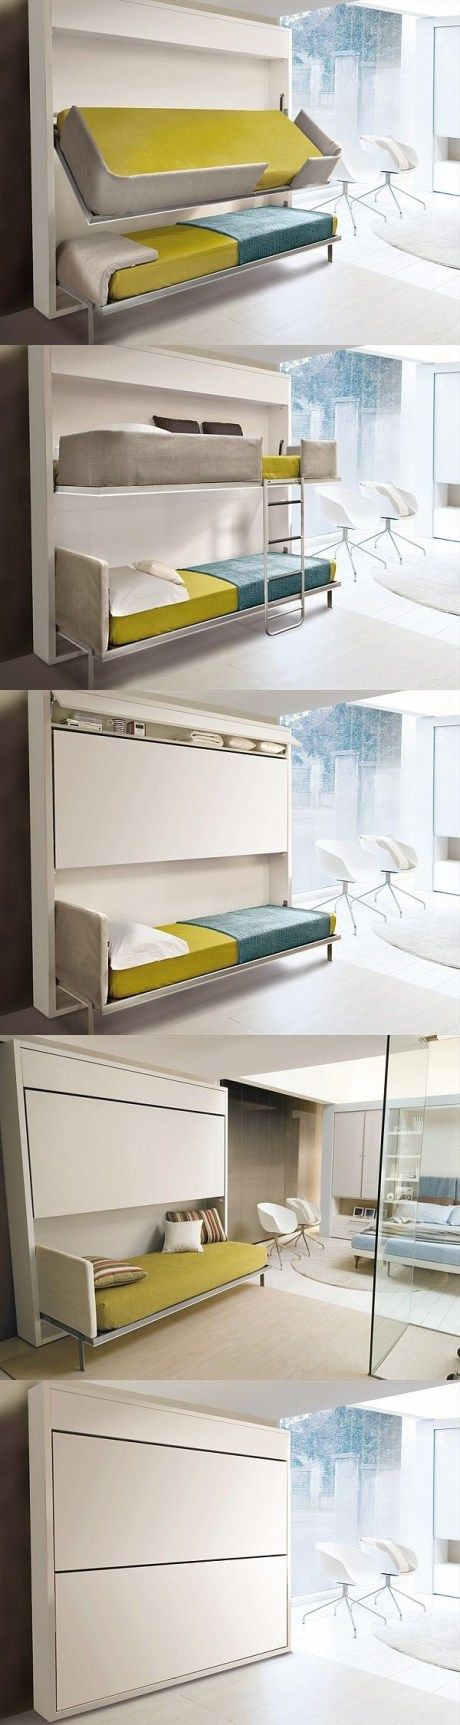 Folding double-deck bed. Cool for kids sleep overs and saves space too! It looks space age sci fi like.